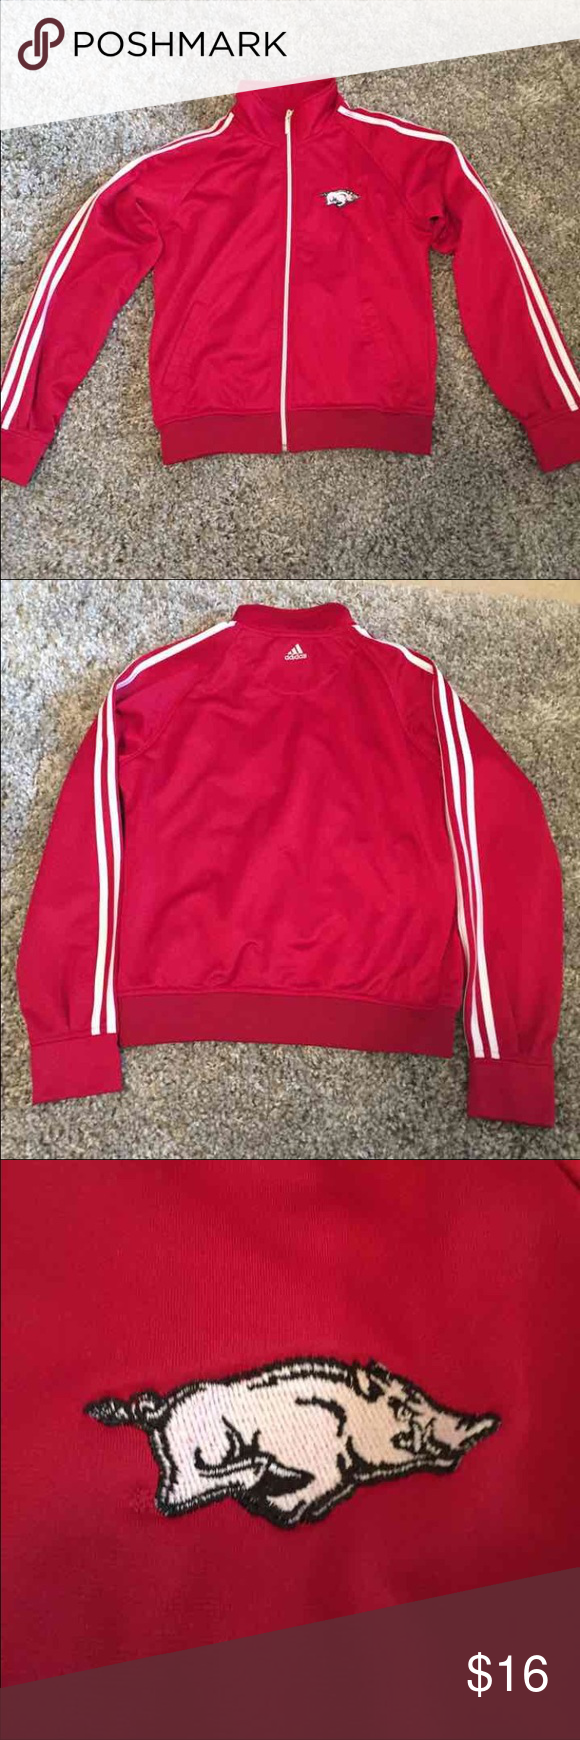 b319866ba9f6 Razorbacks Adidas Jacket Size Medium Adult medium Arkansas Razorbacks Track  Jacket only worn a few times